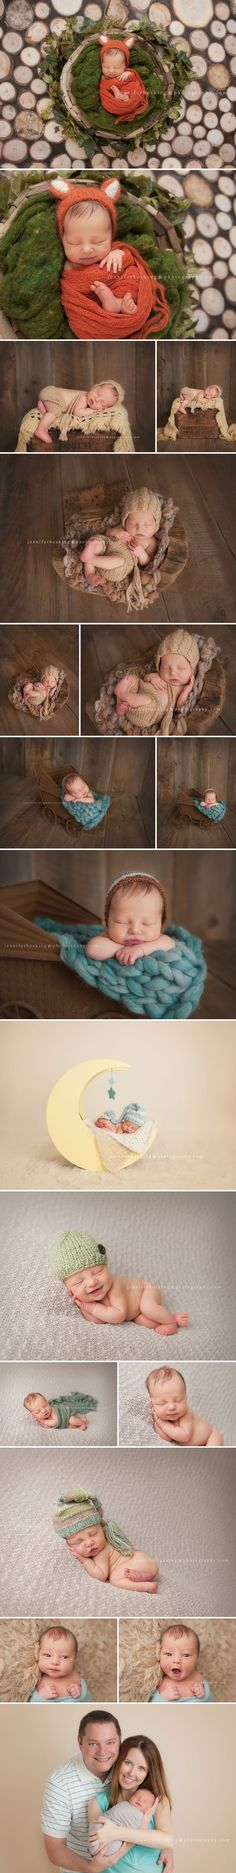 This newborn photo session by Jennifer Hosking Photography is so stunning! Of course the little fox baby caught our eye, but the focus, light and perspective kept us looking. Beautiful!